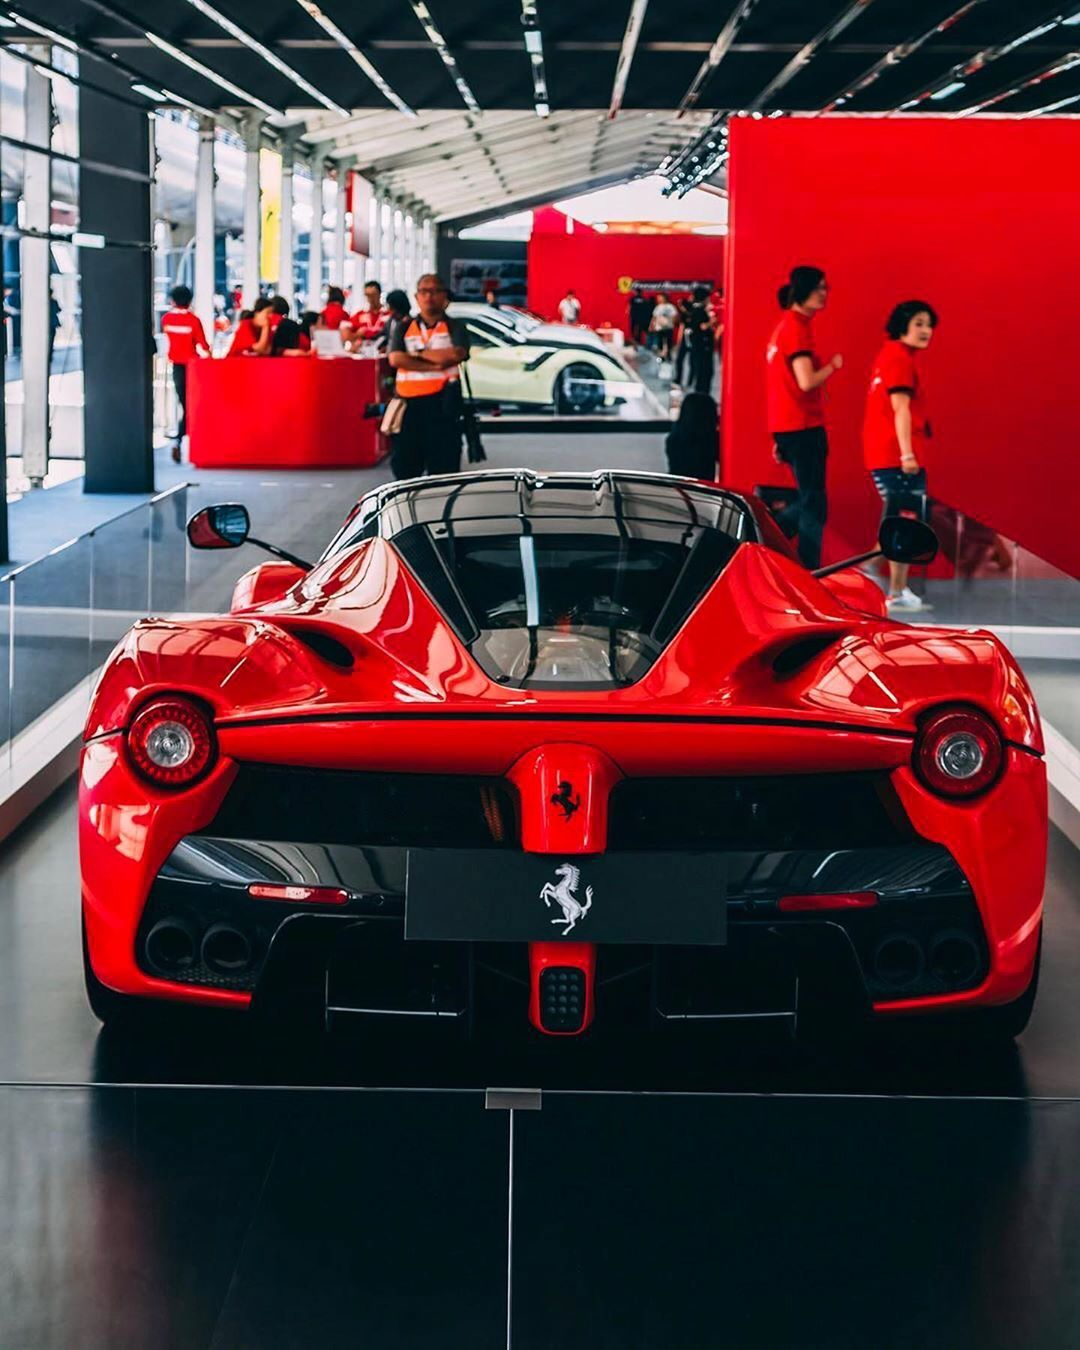 Instagram Limited Supercars On Instagram Laferrari Swipeleft Follow Us For More In 2020 Ferrari Laferrari Super Cars Top Luxury Cars